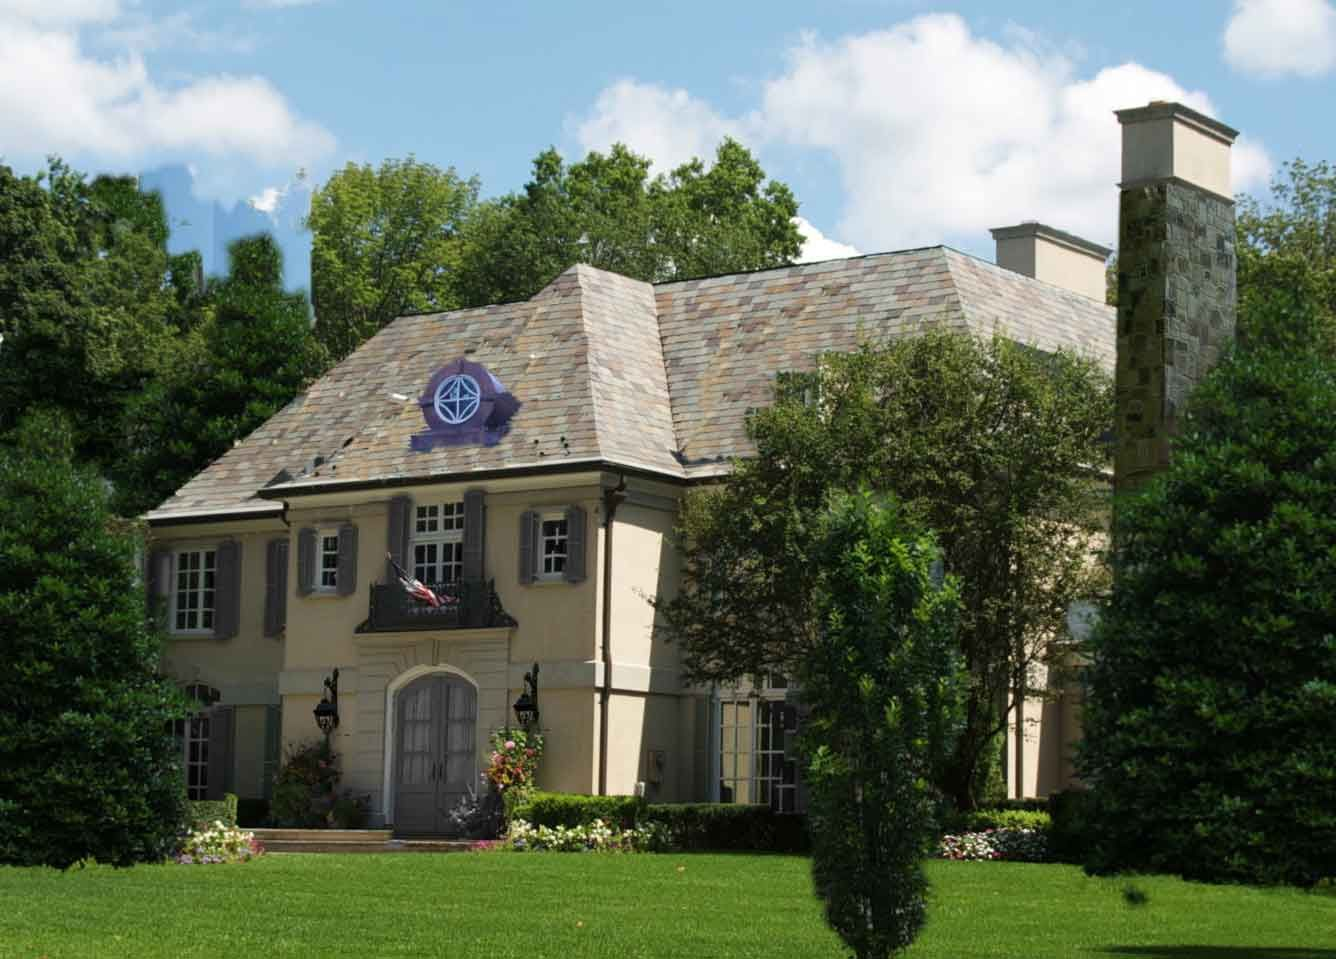 French chateau homes photos french eclectic for French chateau home designs